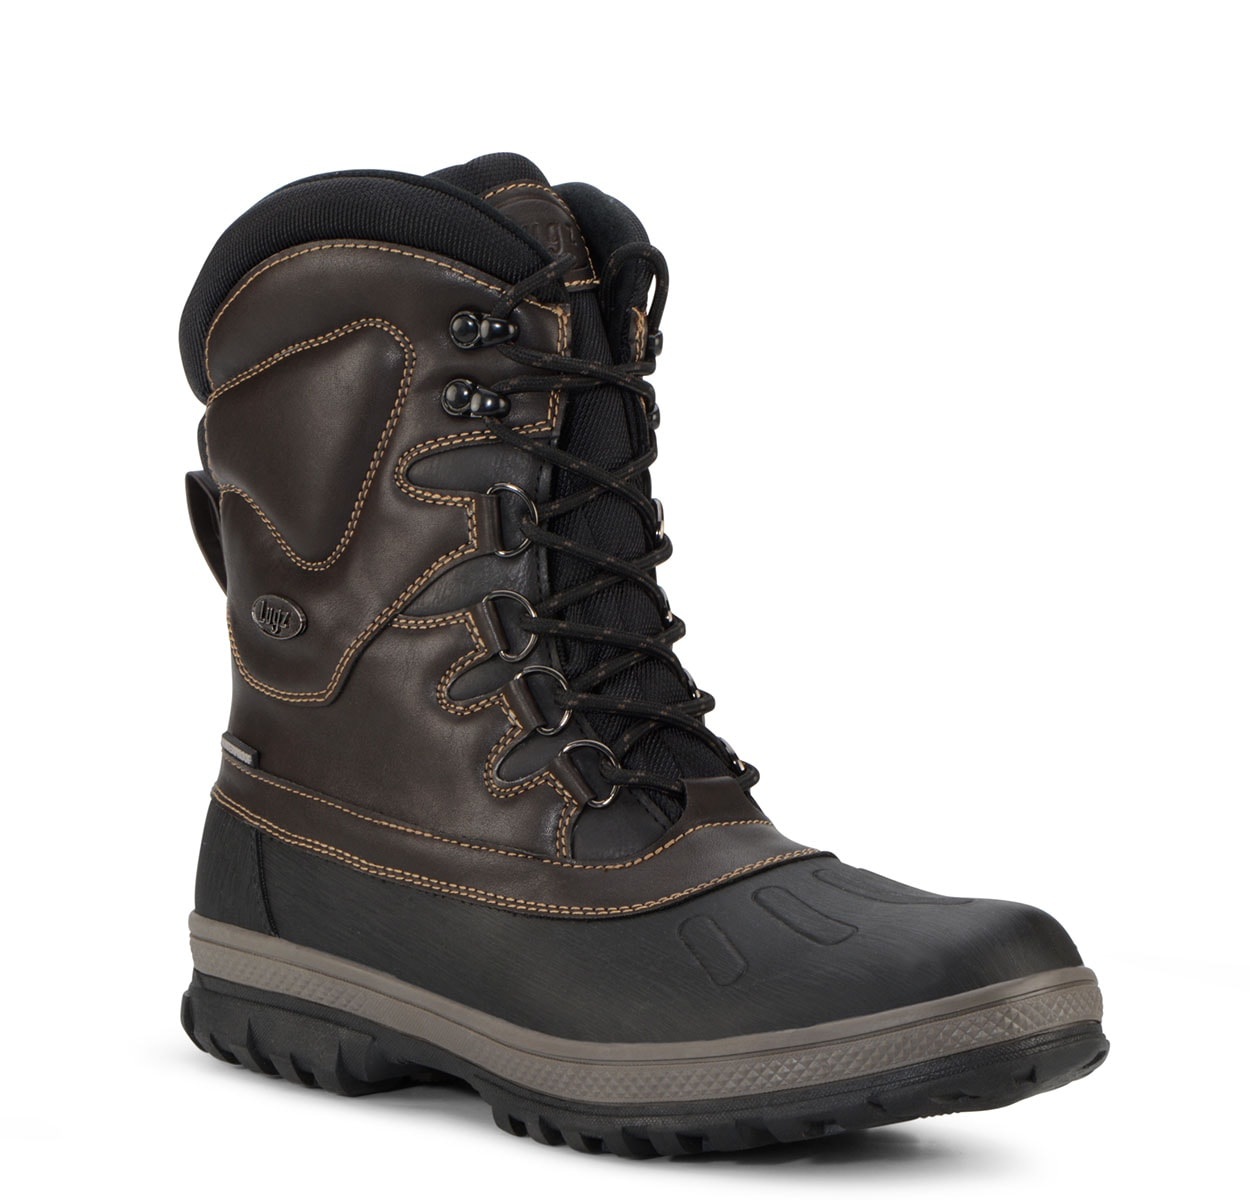 Men's Anorak 8-Inch Waterproof Boot (Choose Your Color: CAROB/OTTER/BLACK, Choose Your Size: 8.5)